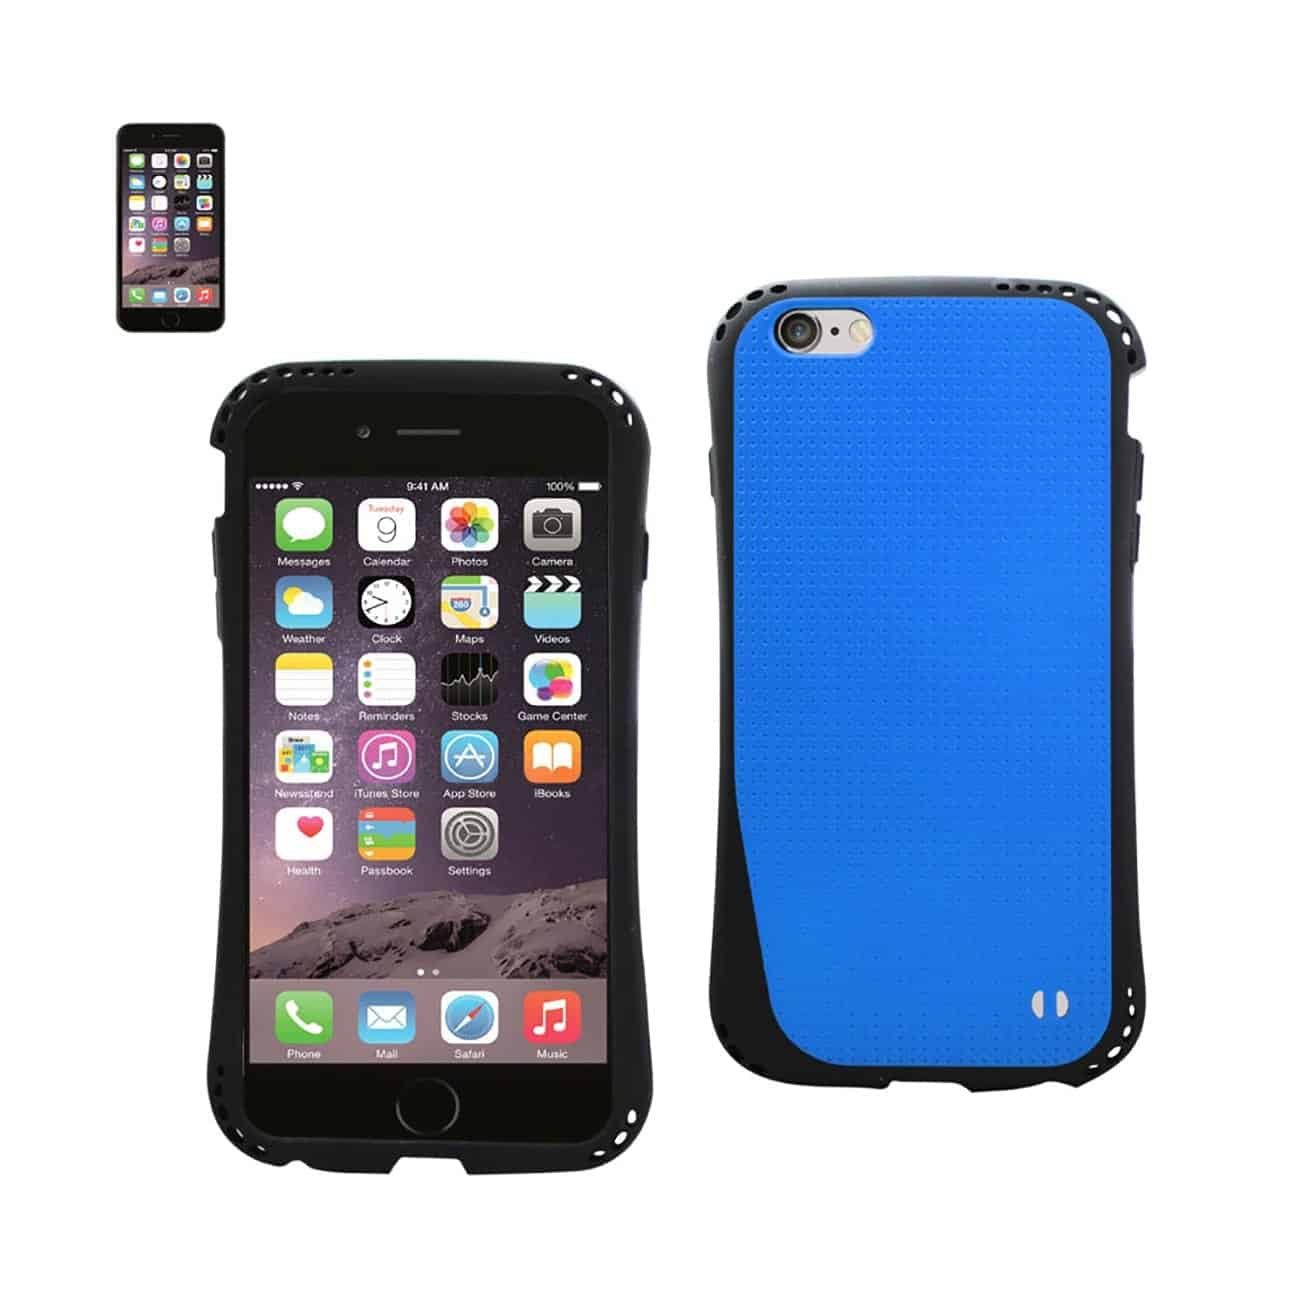 IPHONE 6 PLUS DROPPROOF AIR CUSHION CASE WITH CHAIN HOLE IN NAVY